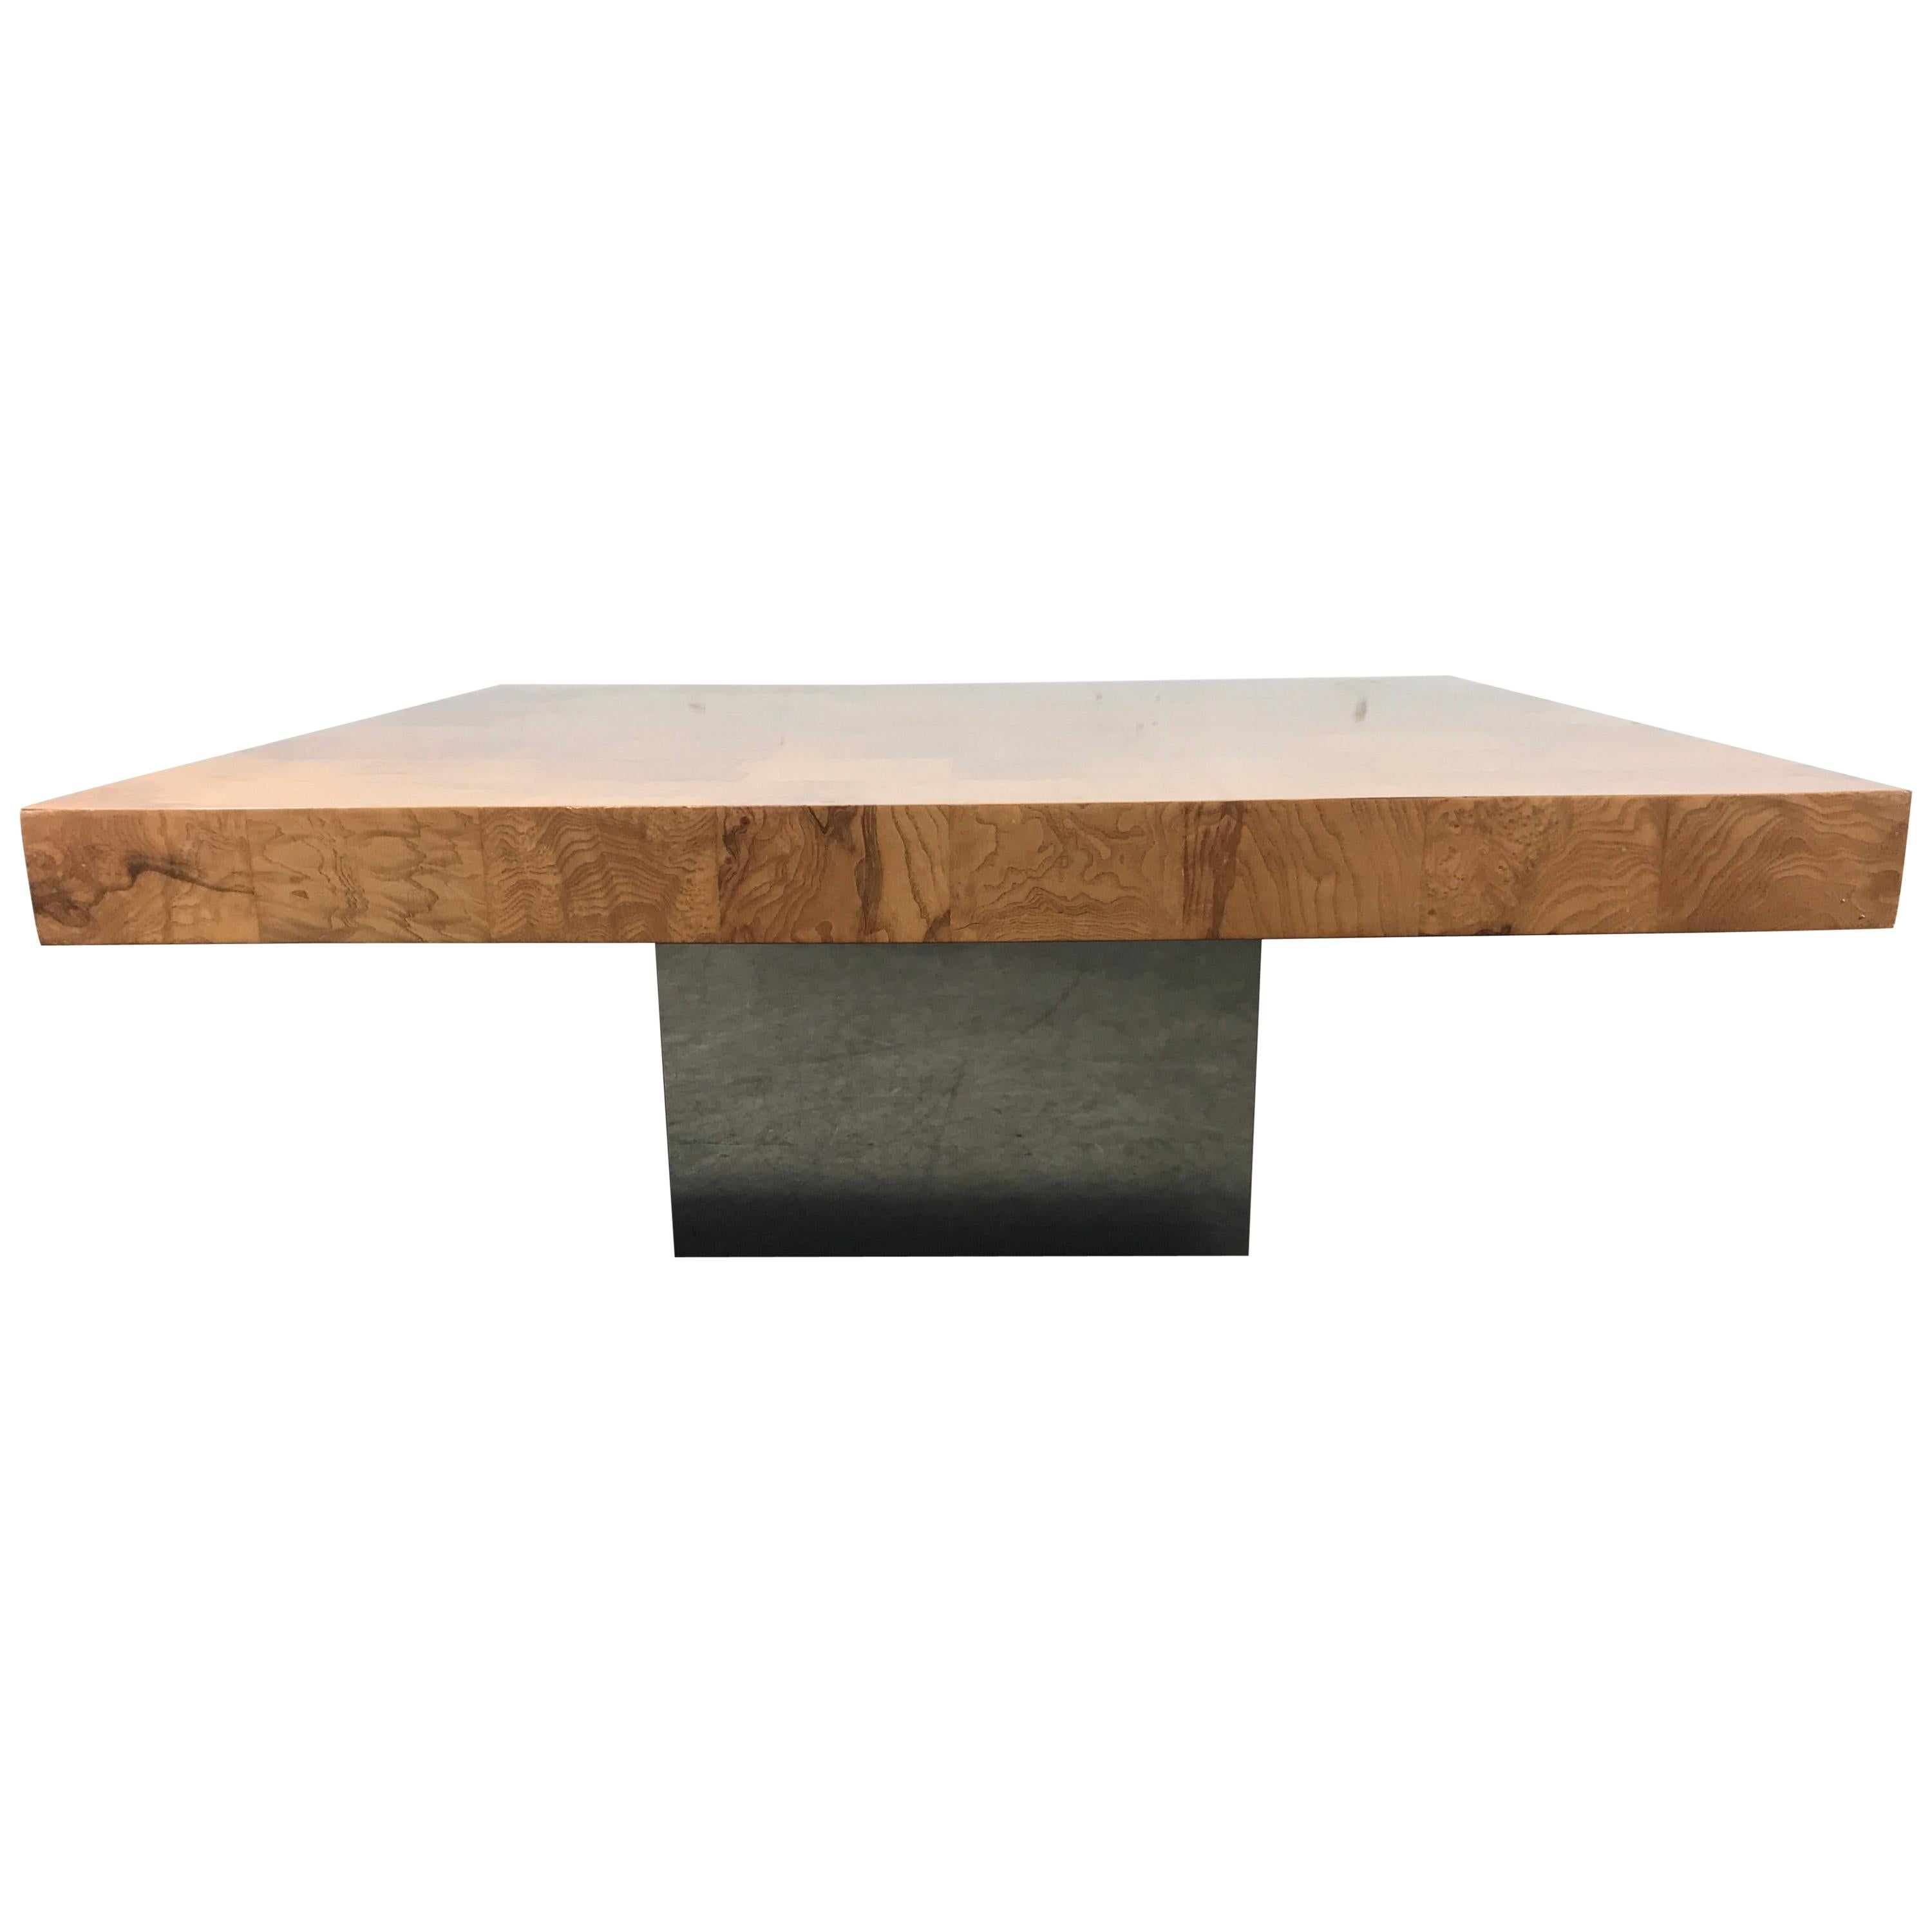 Ordinaire Classic Burl Wood And Chrome Cocktail Coffee Table Designed By Milo  Baughman For Sale